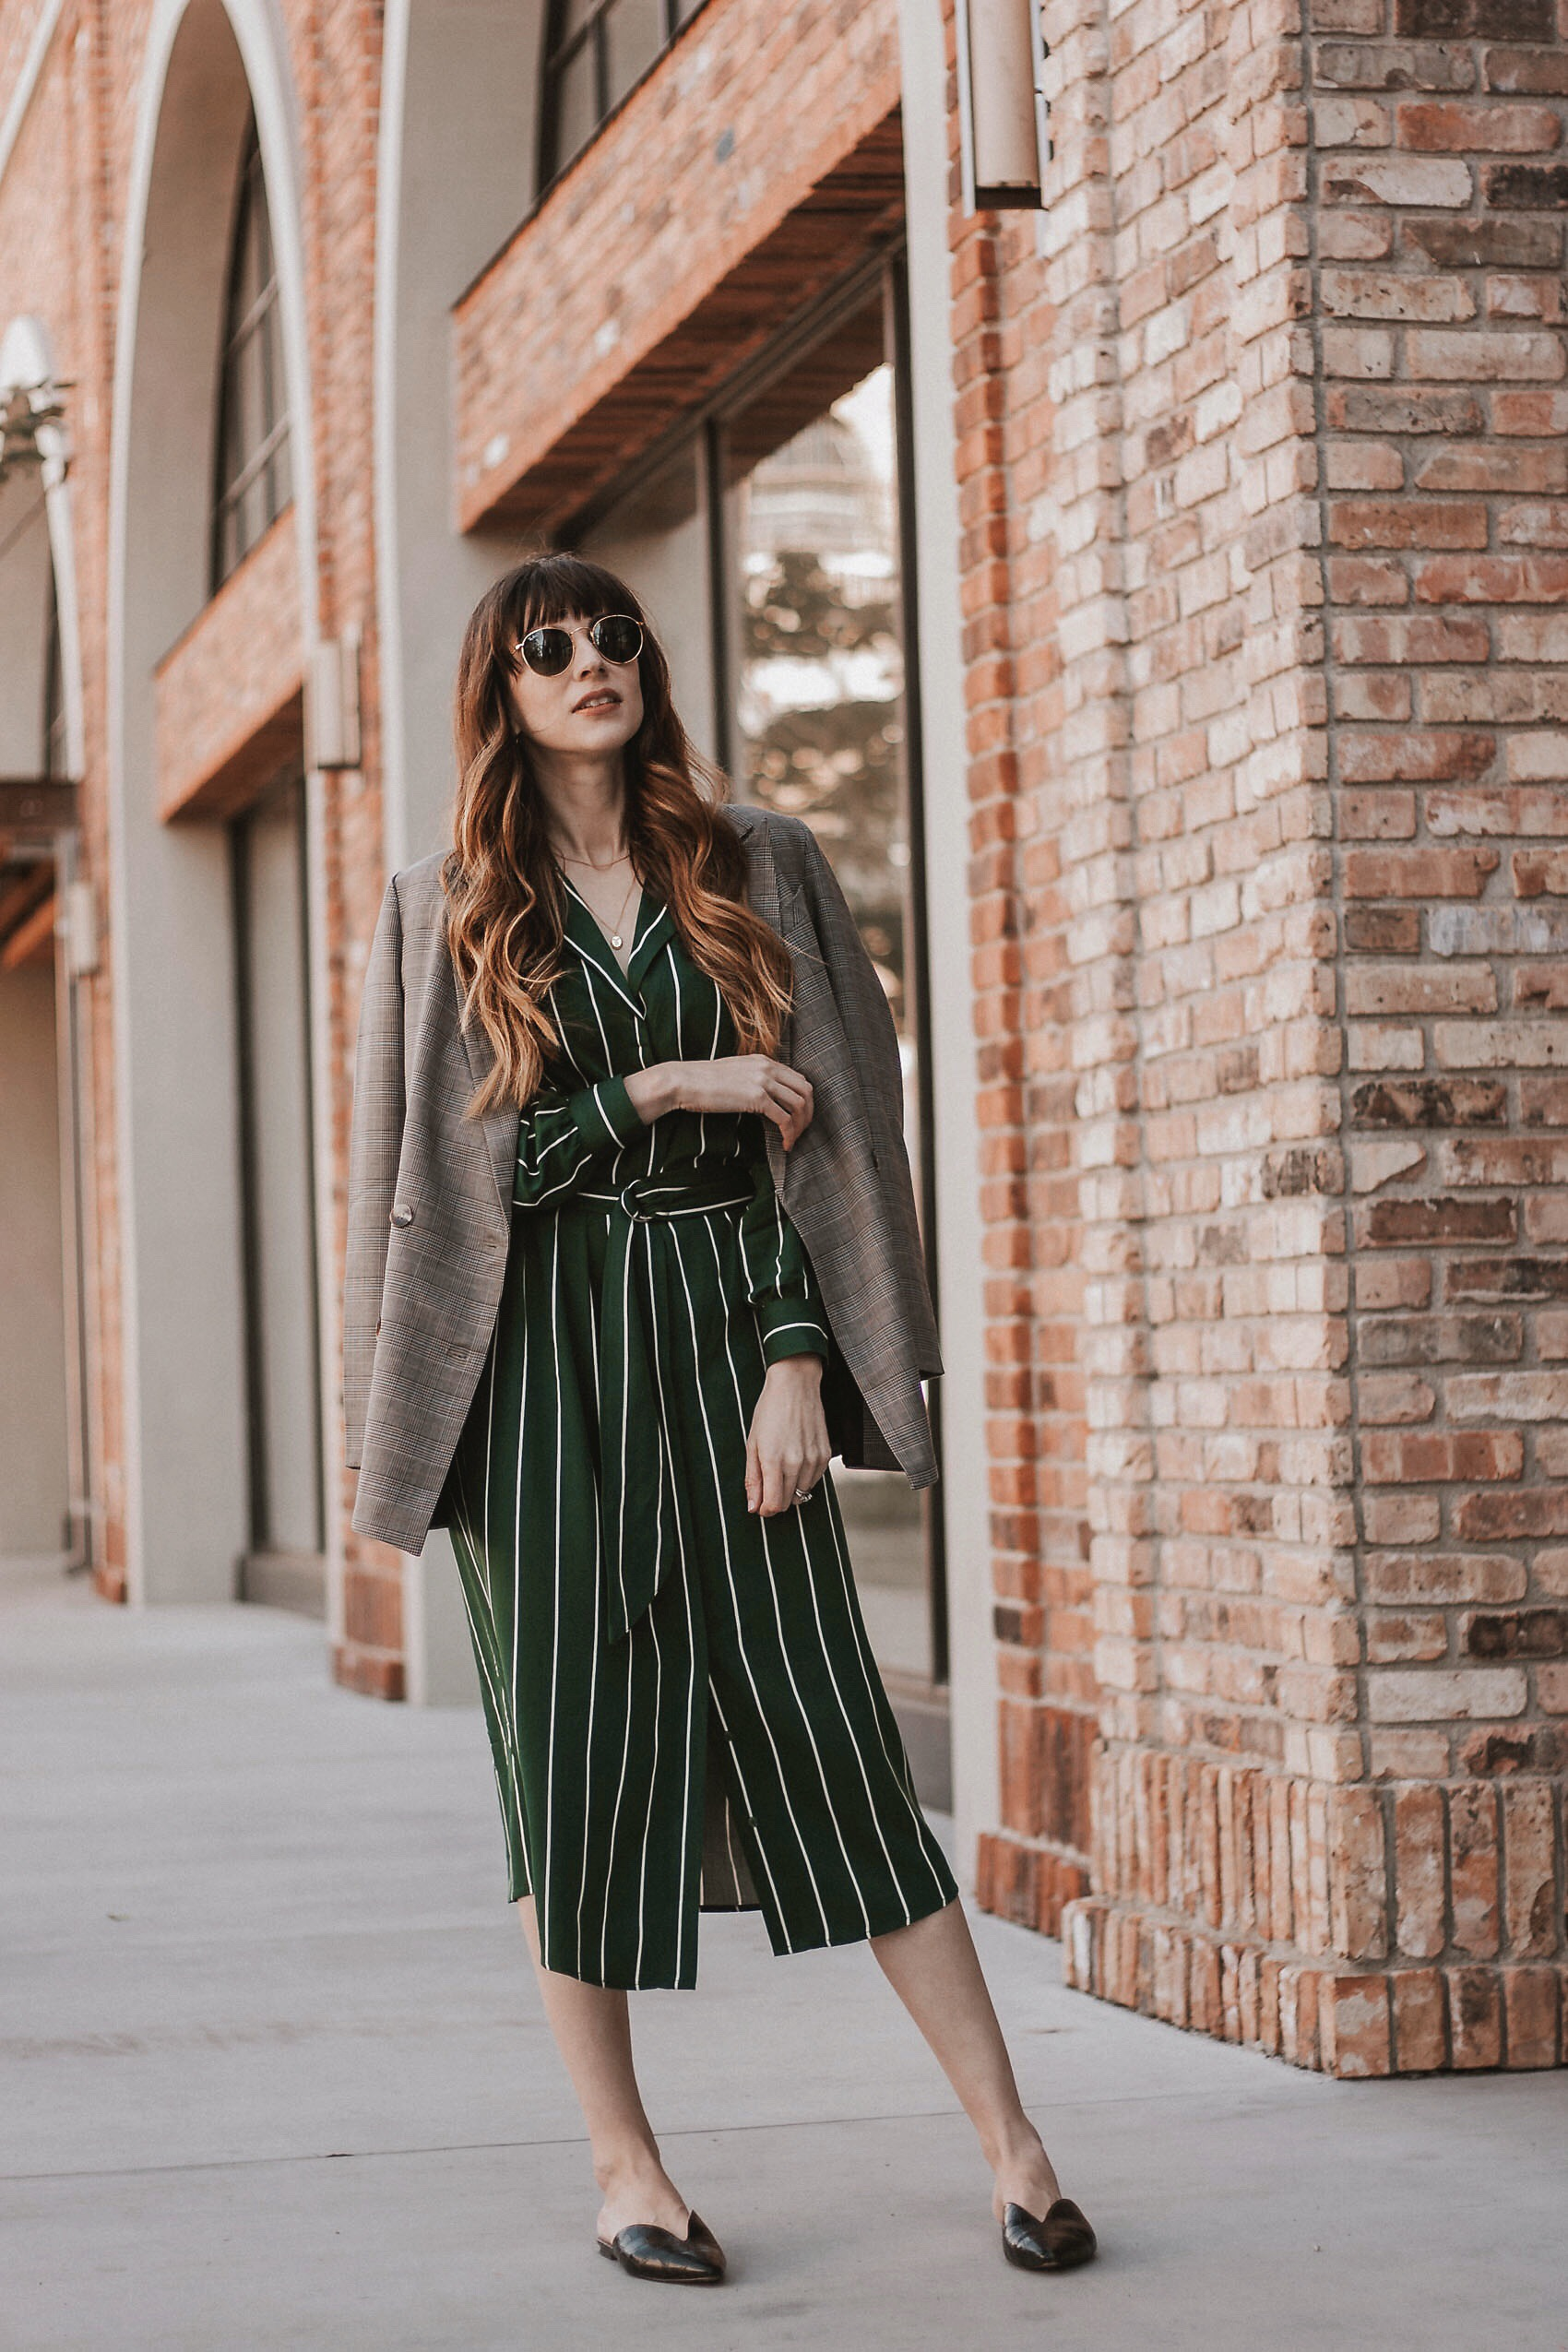 How to Style a Shirtdress 3 Ways